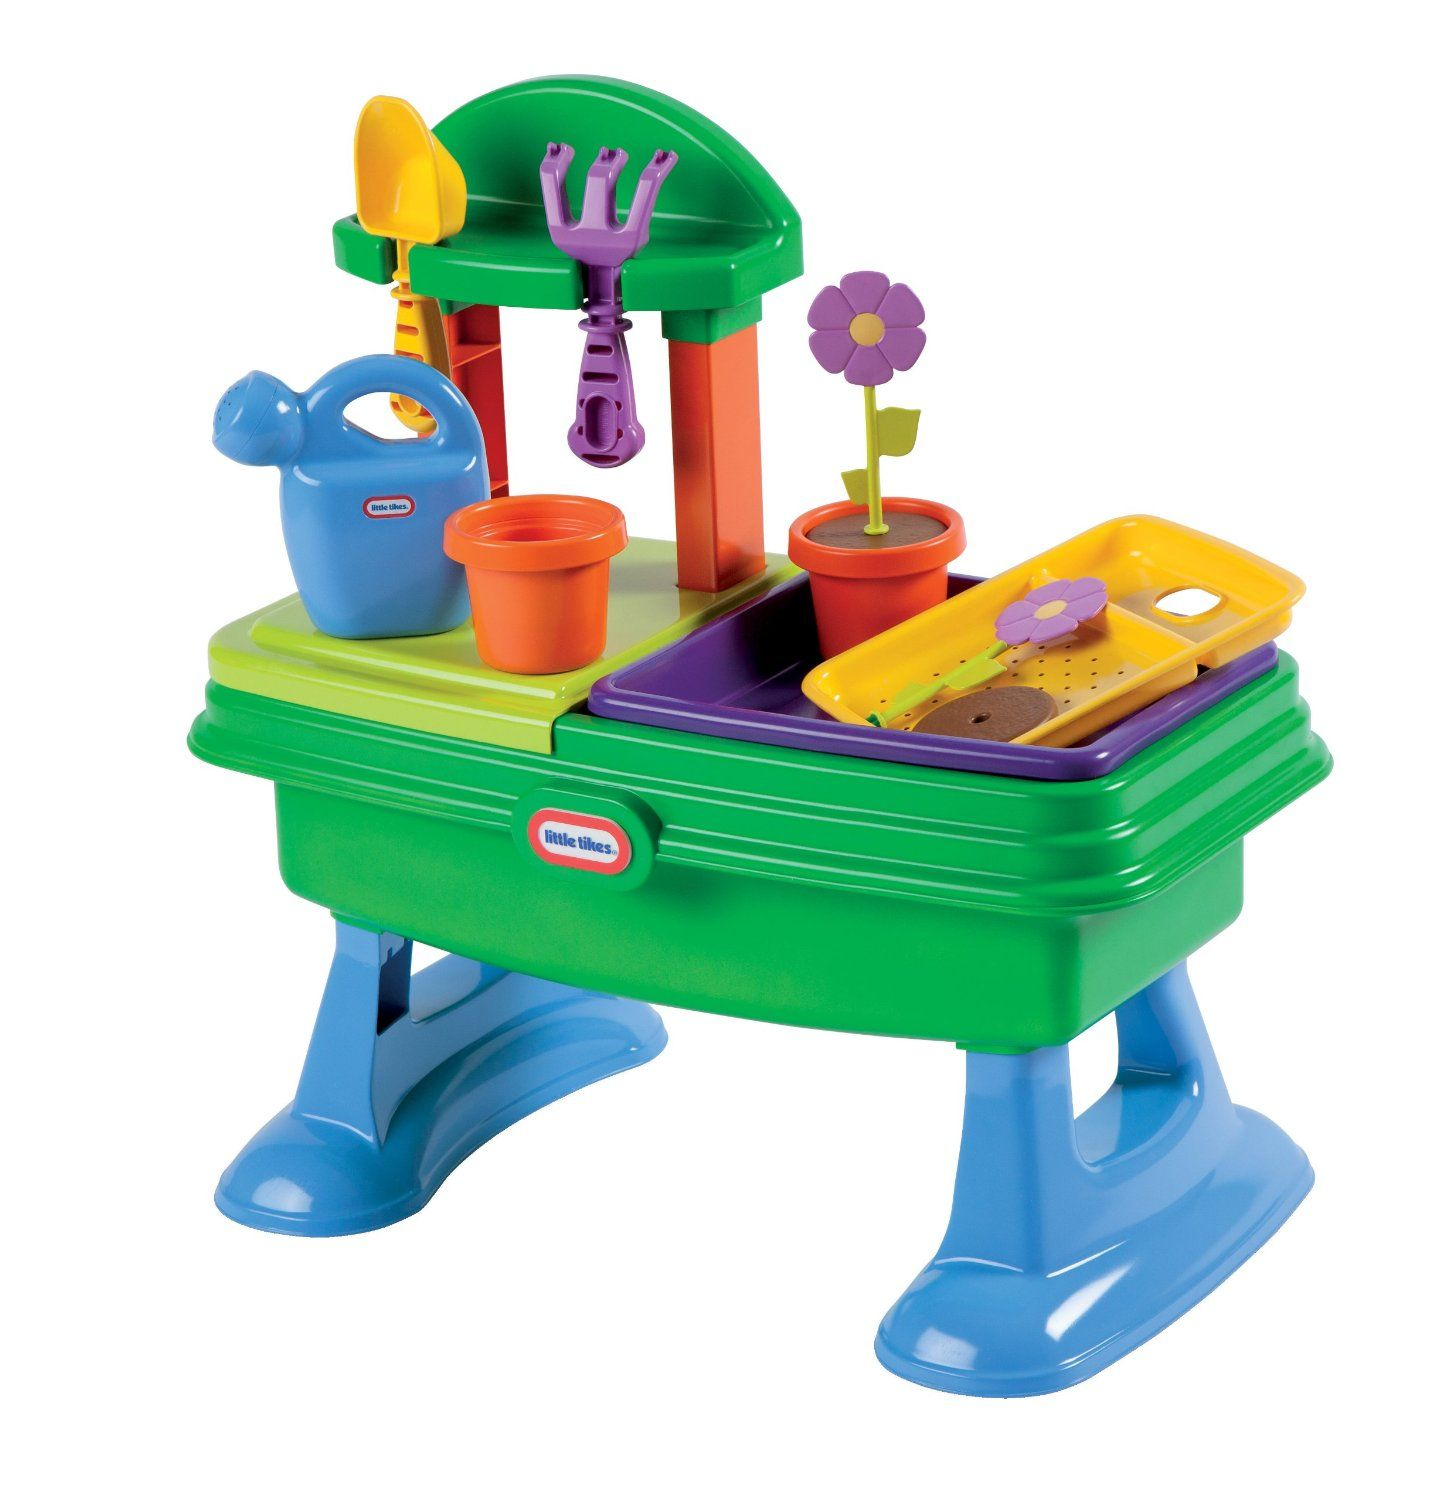 Toys R Us Kids Chairs Amazon Little Tikes Garden Table Toys And Games